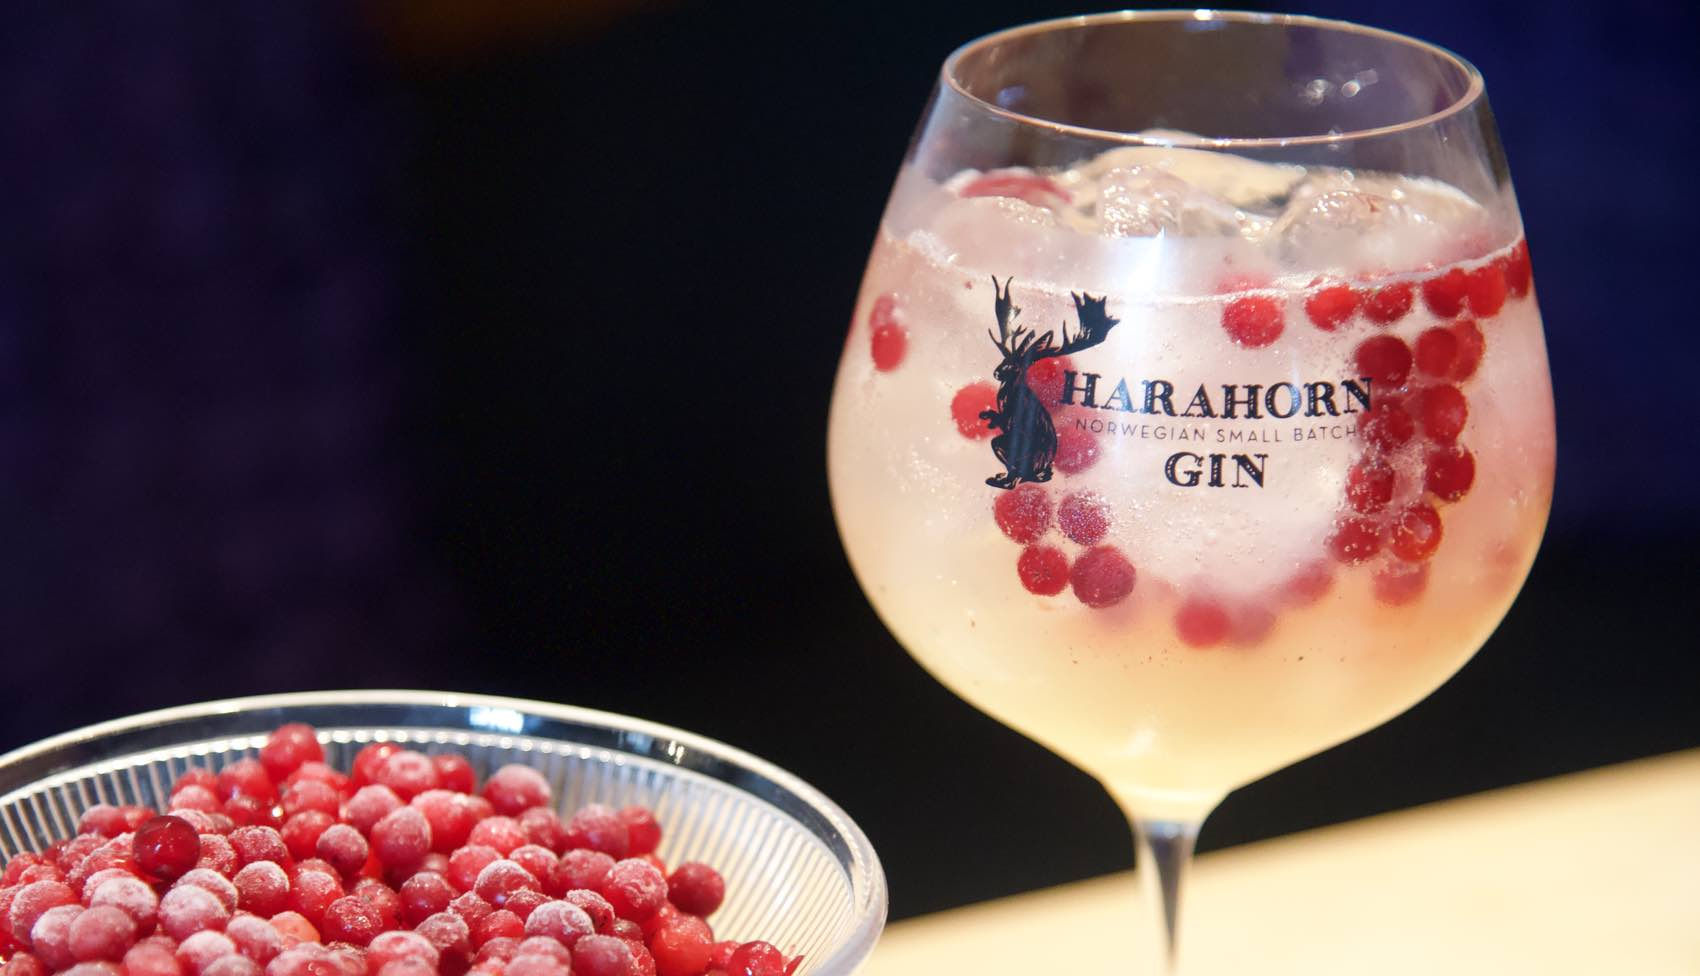 An arctic cocktail made of Harahorn Gin produced in Norway and awarded with international awards.